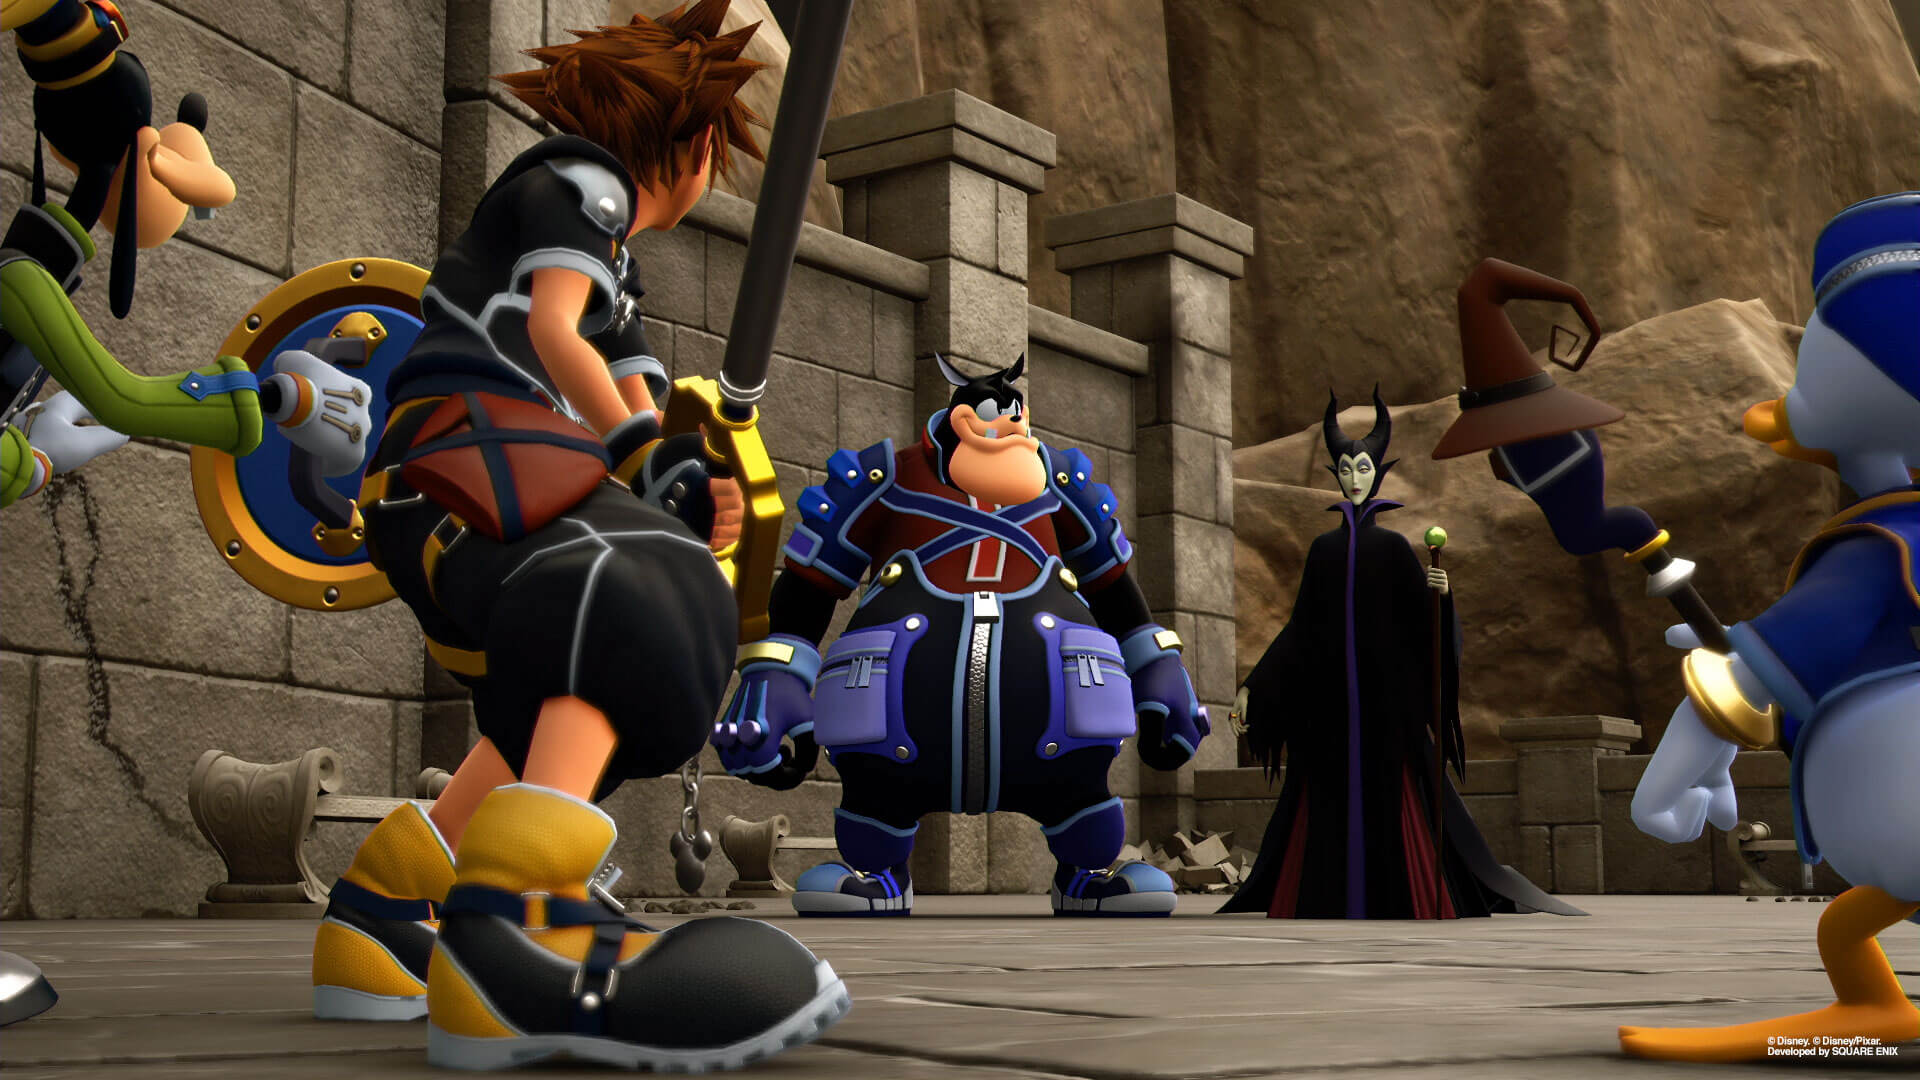 Kingdom-Hearts-3-NoypiGeeks